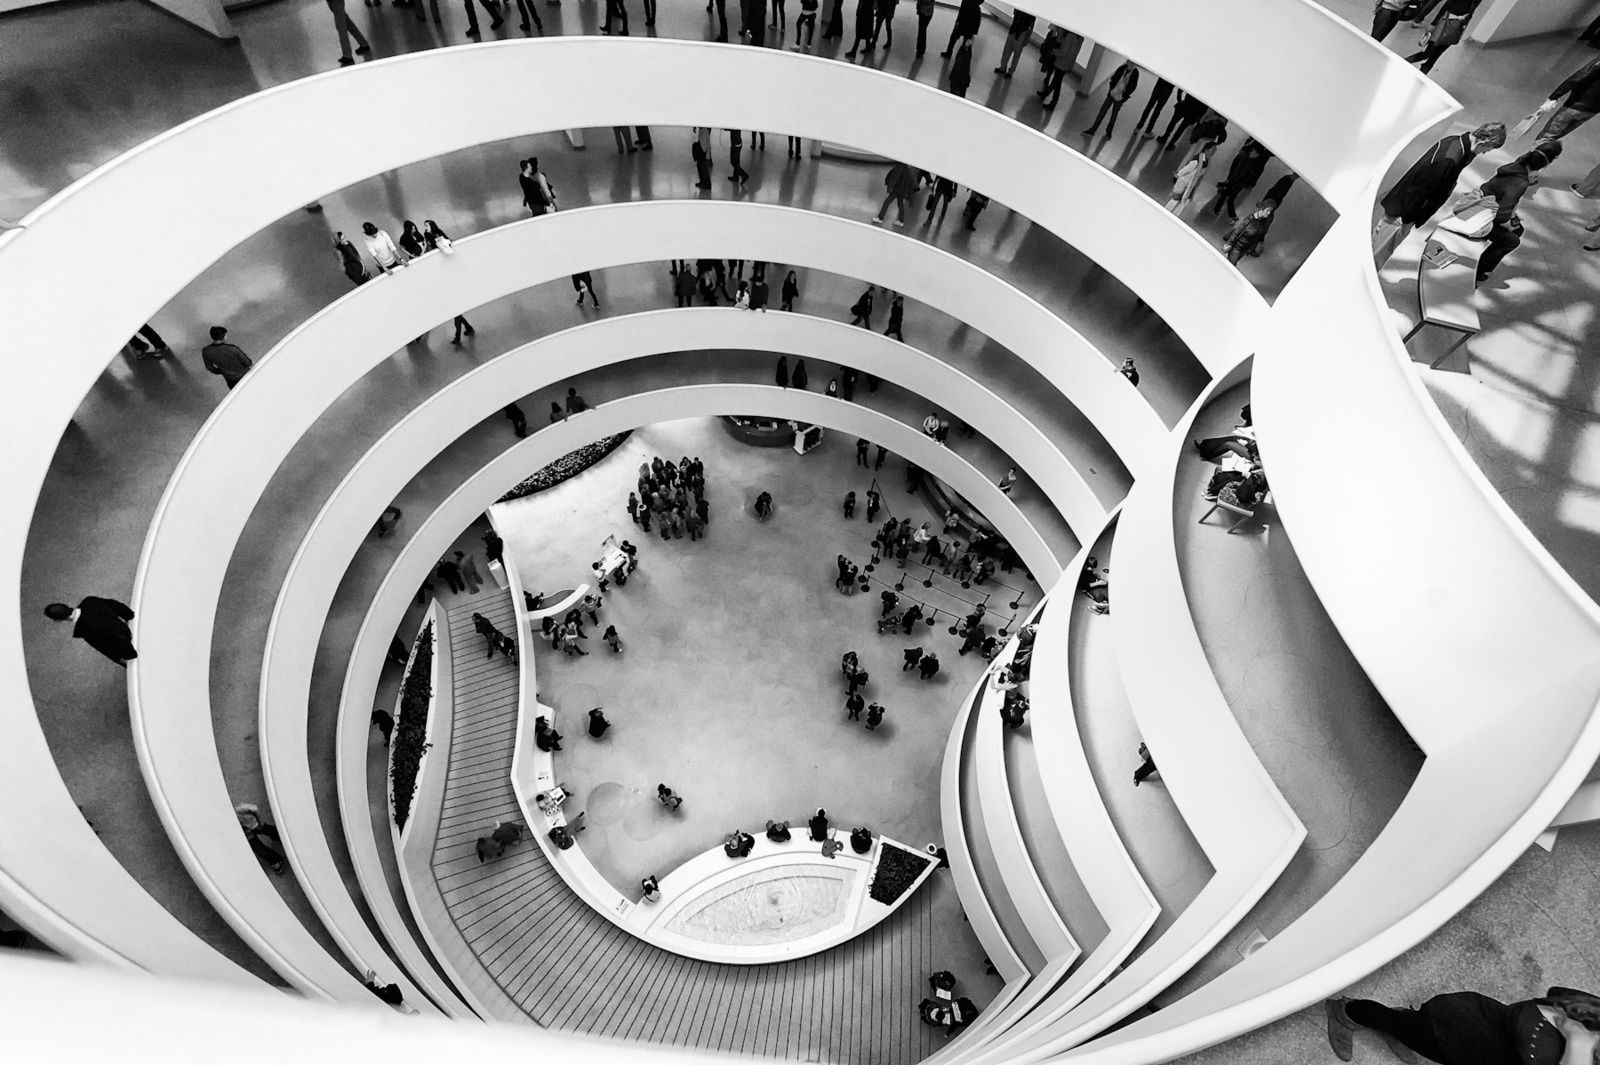 Guggenheim Museum, New York - Source: genelowinger.com